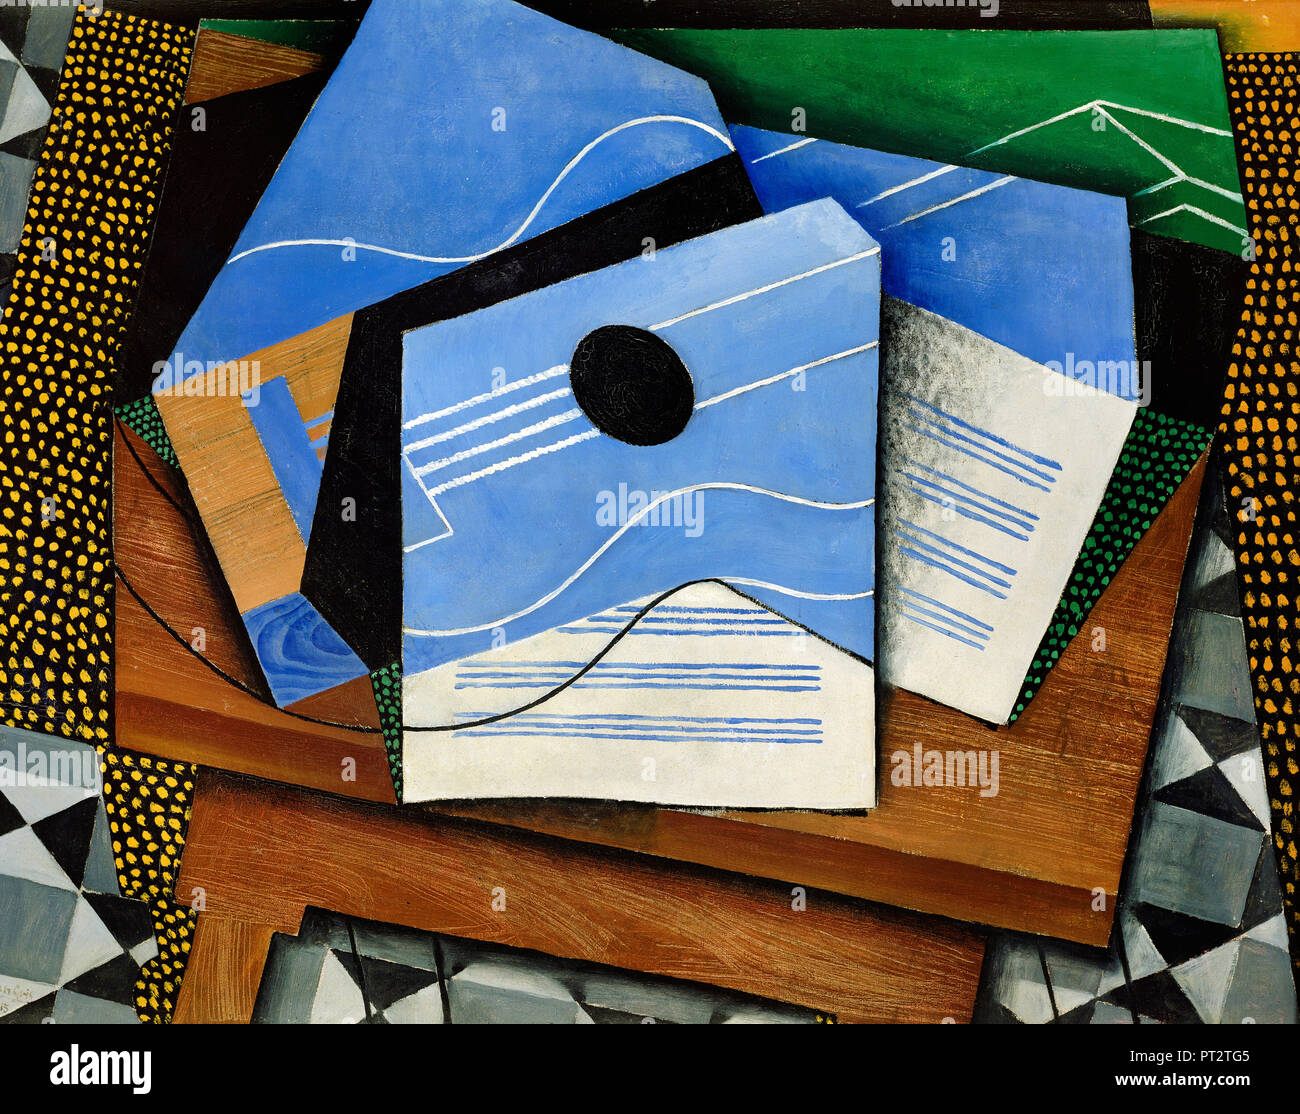 Juan Gris, Guitar on a Table 1915 Oil on canvas, Kroller-Muller Museum, Otterlo, Netherlands. - Stock Image